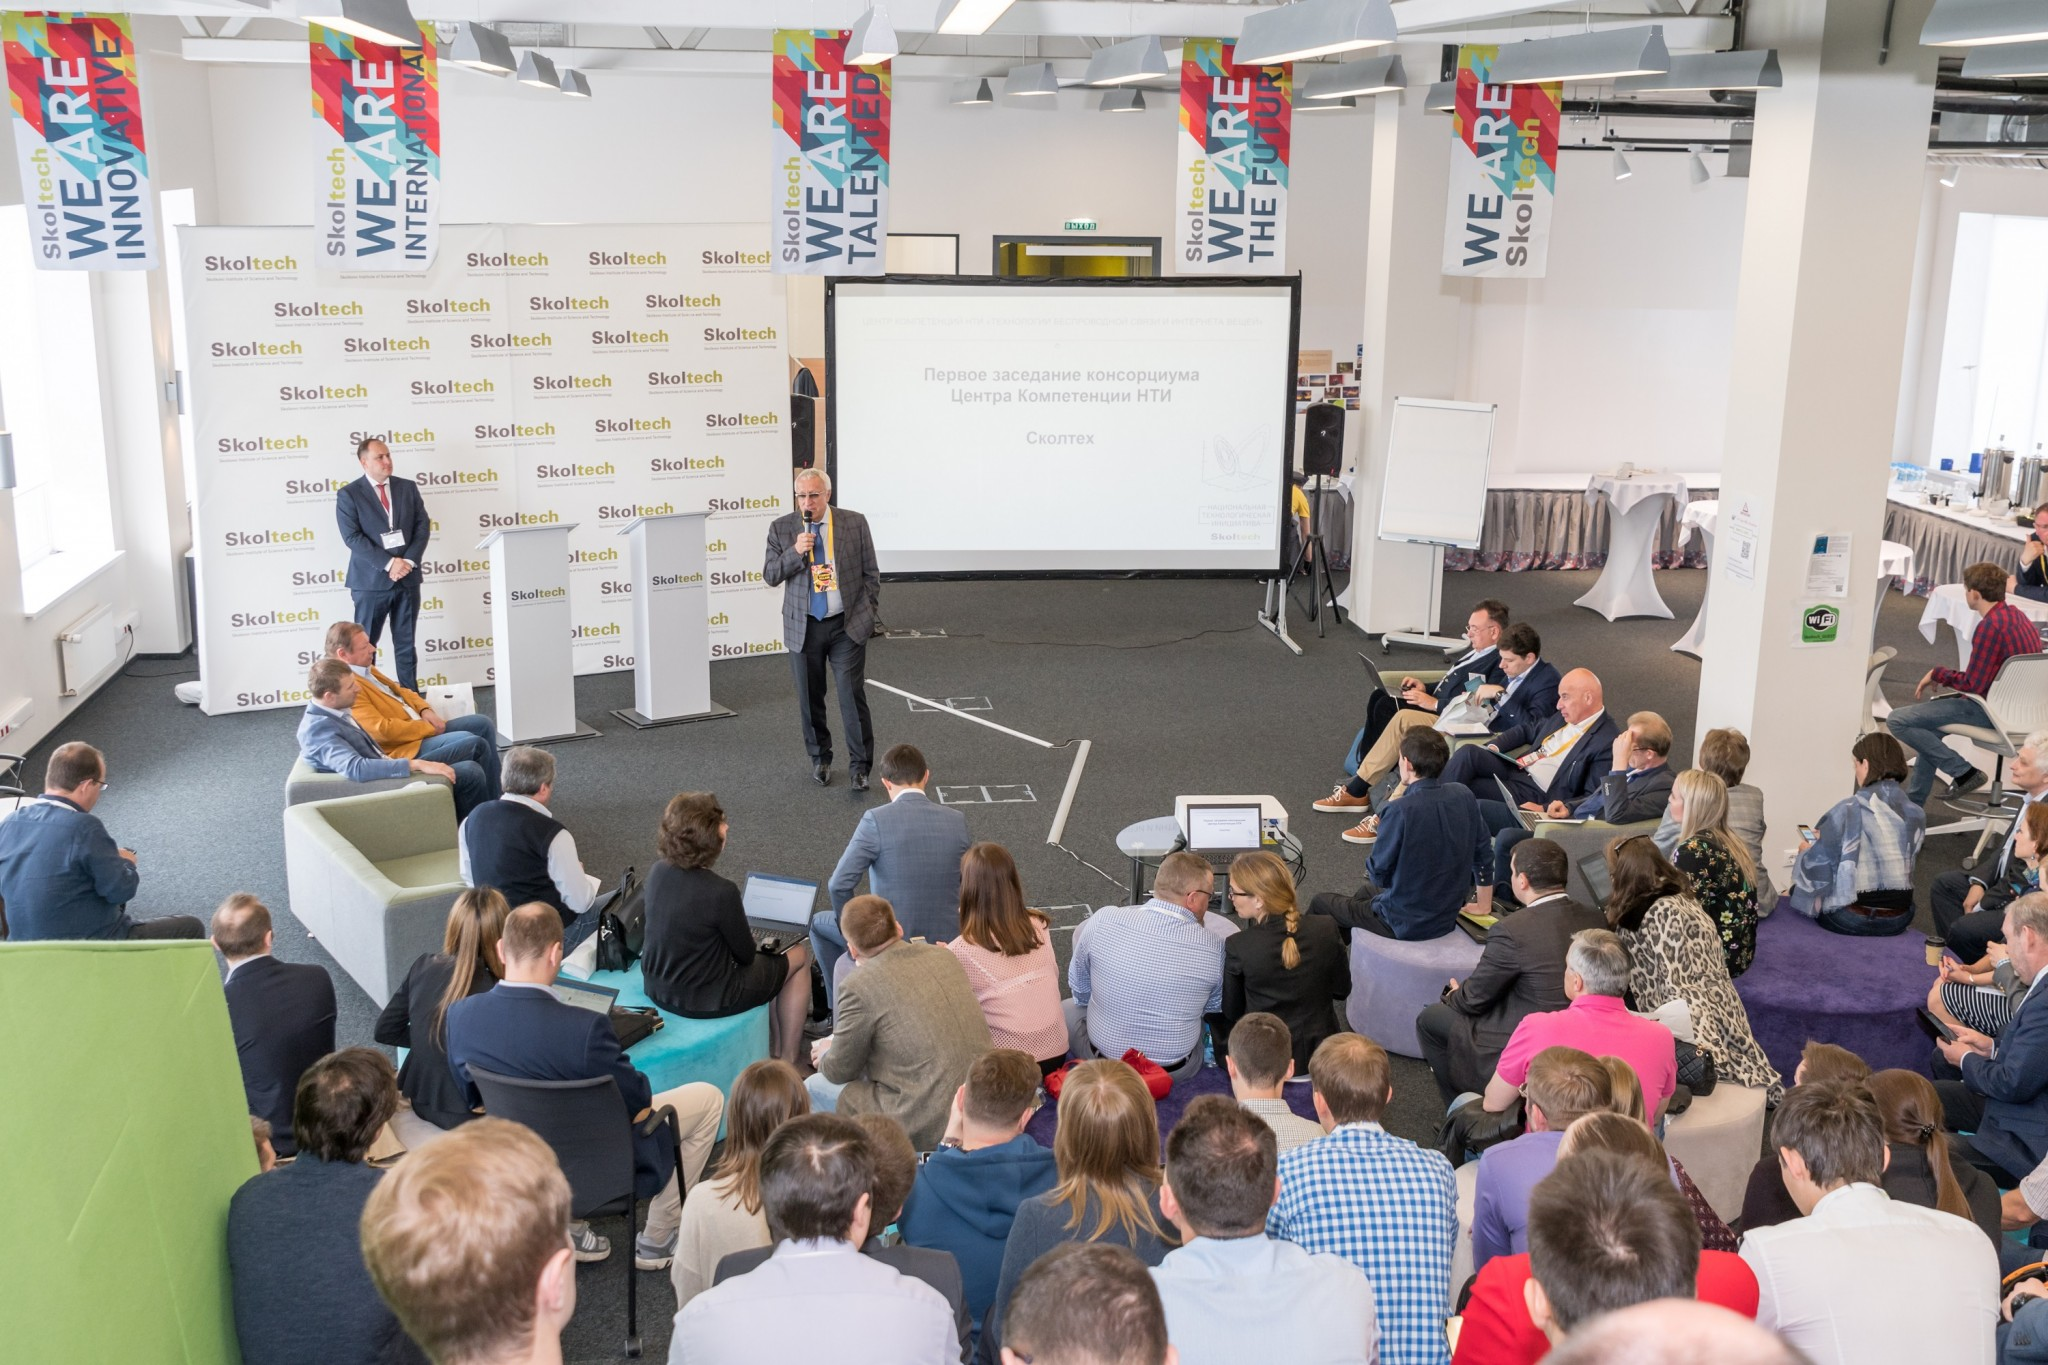 Skoltech President Alexander Kuleshov speaks before a packed house at a signing ceremony for the new IoT center on Friday. Photo: Skoltech.